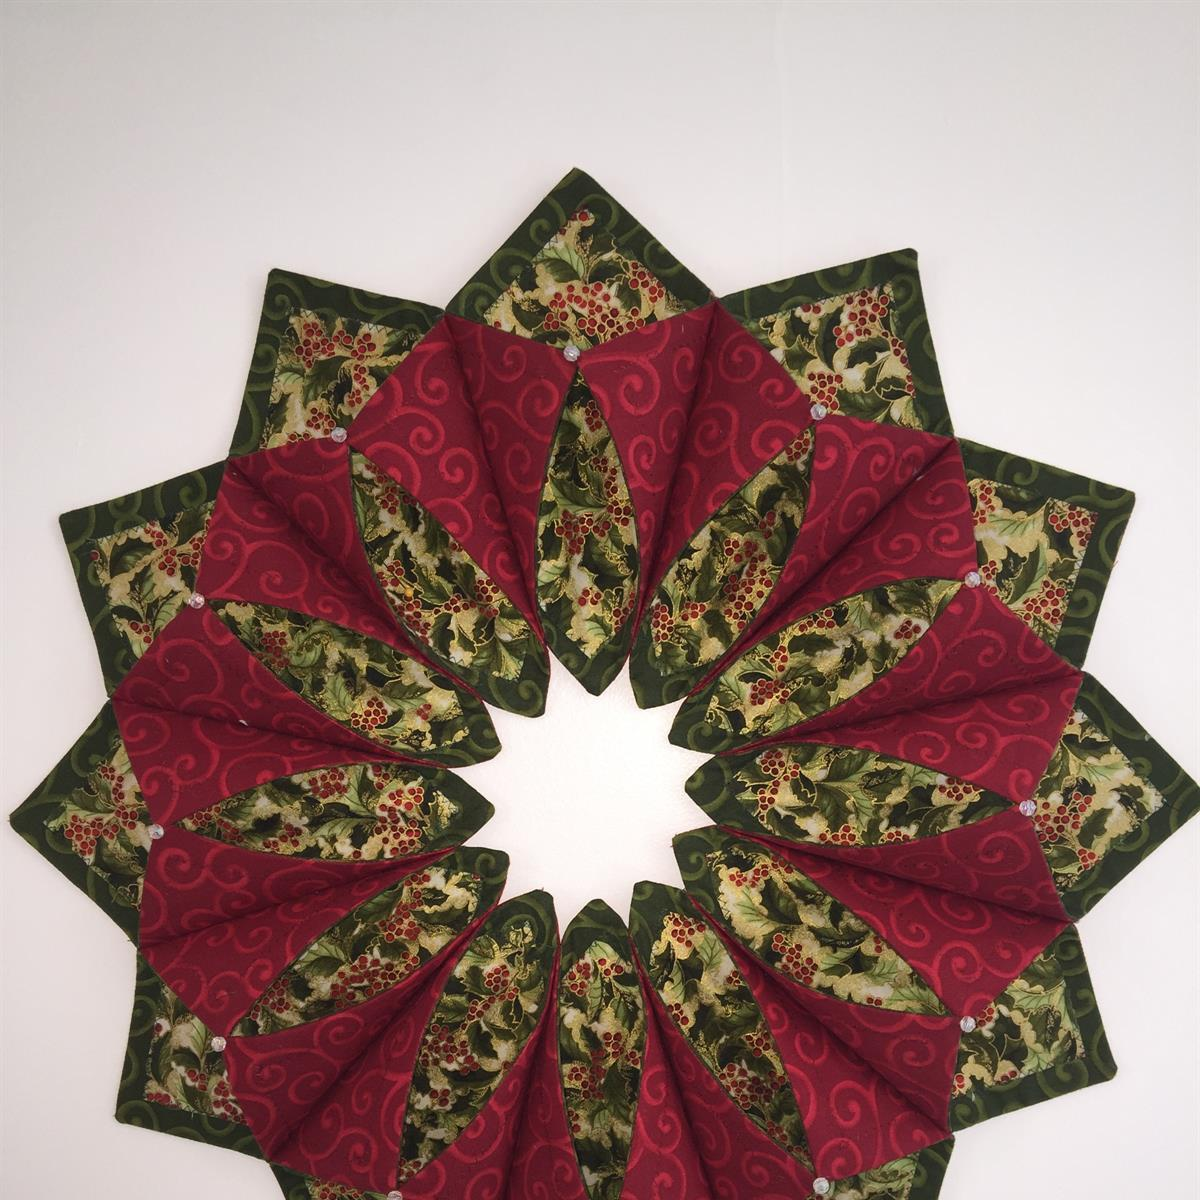 "<span style=""font-family:papyrus,parchment mf,fantasy""><span style=""font-size:22px"">Christmas Wreath Class</span></span>"